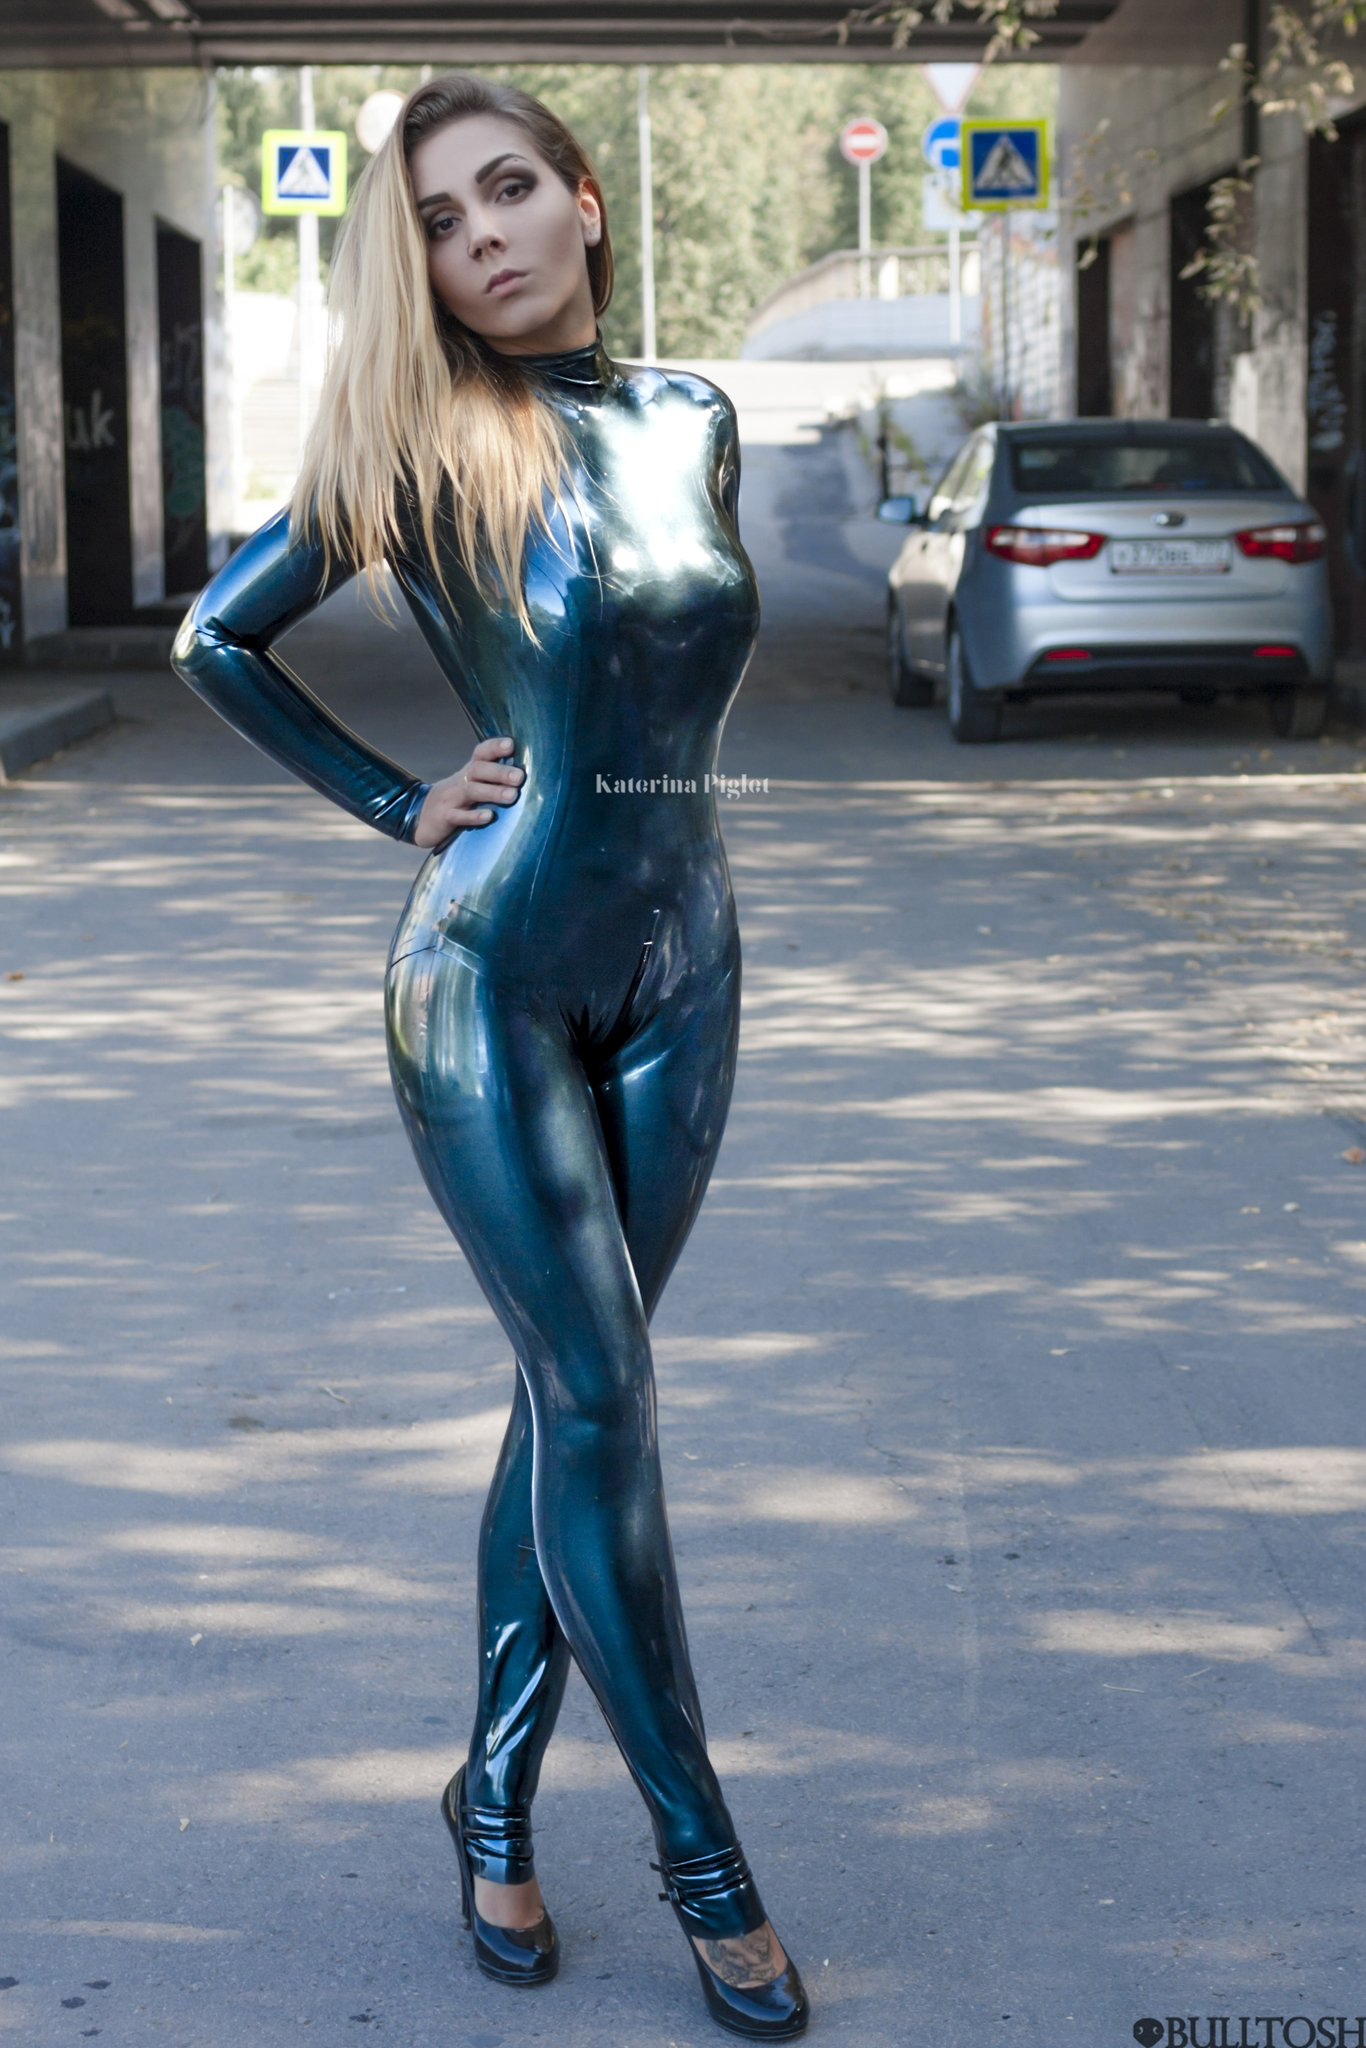 Girl in tight latex